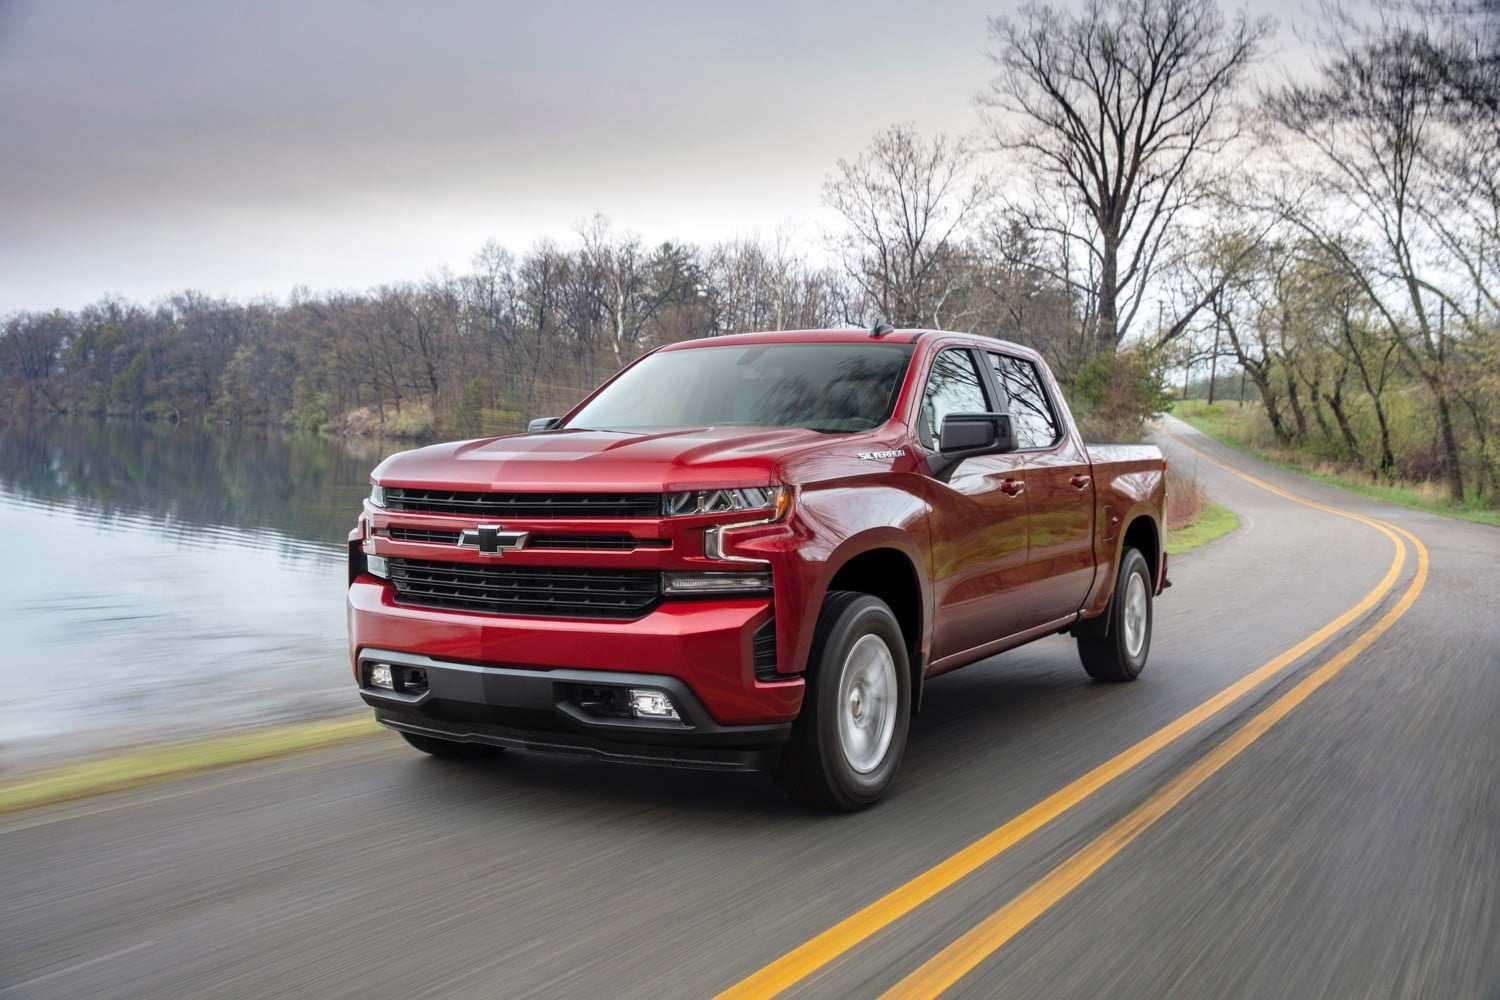 62 The Best 2019 Chevrolet Lineup Price Design And Review